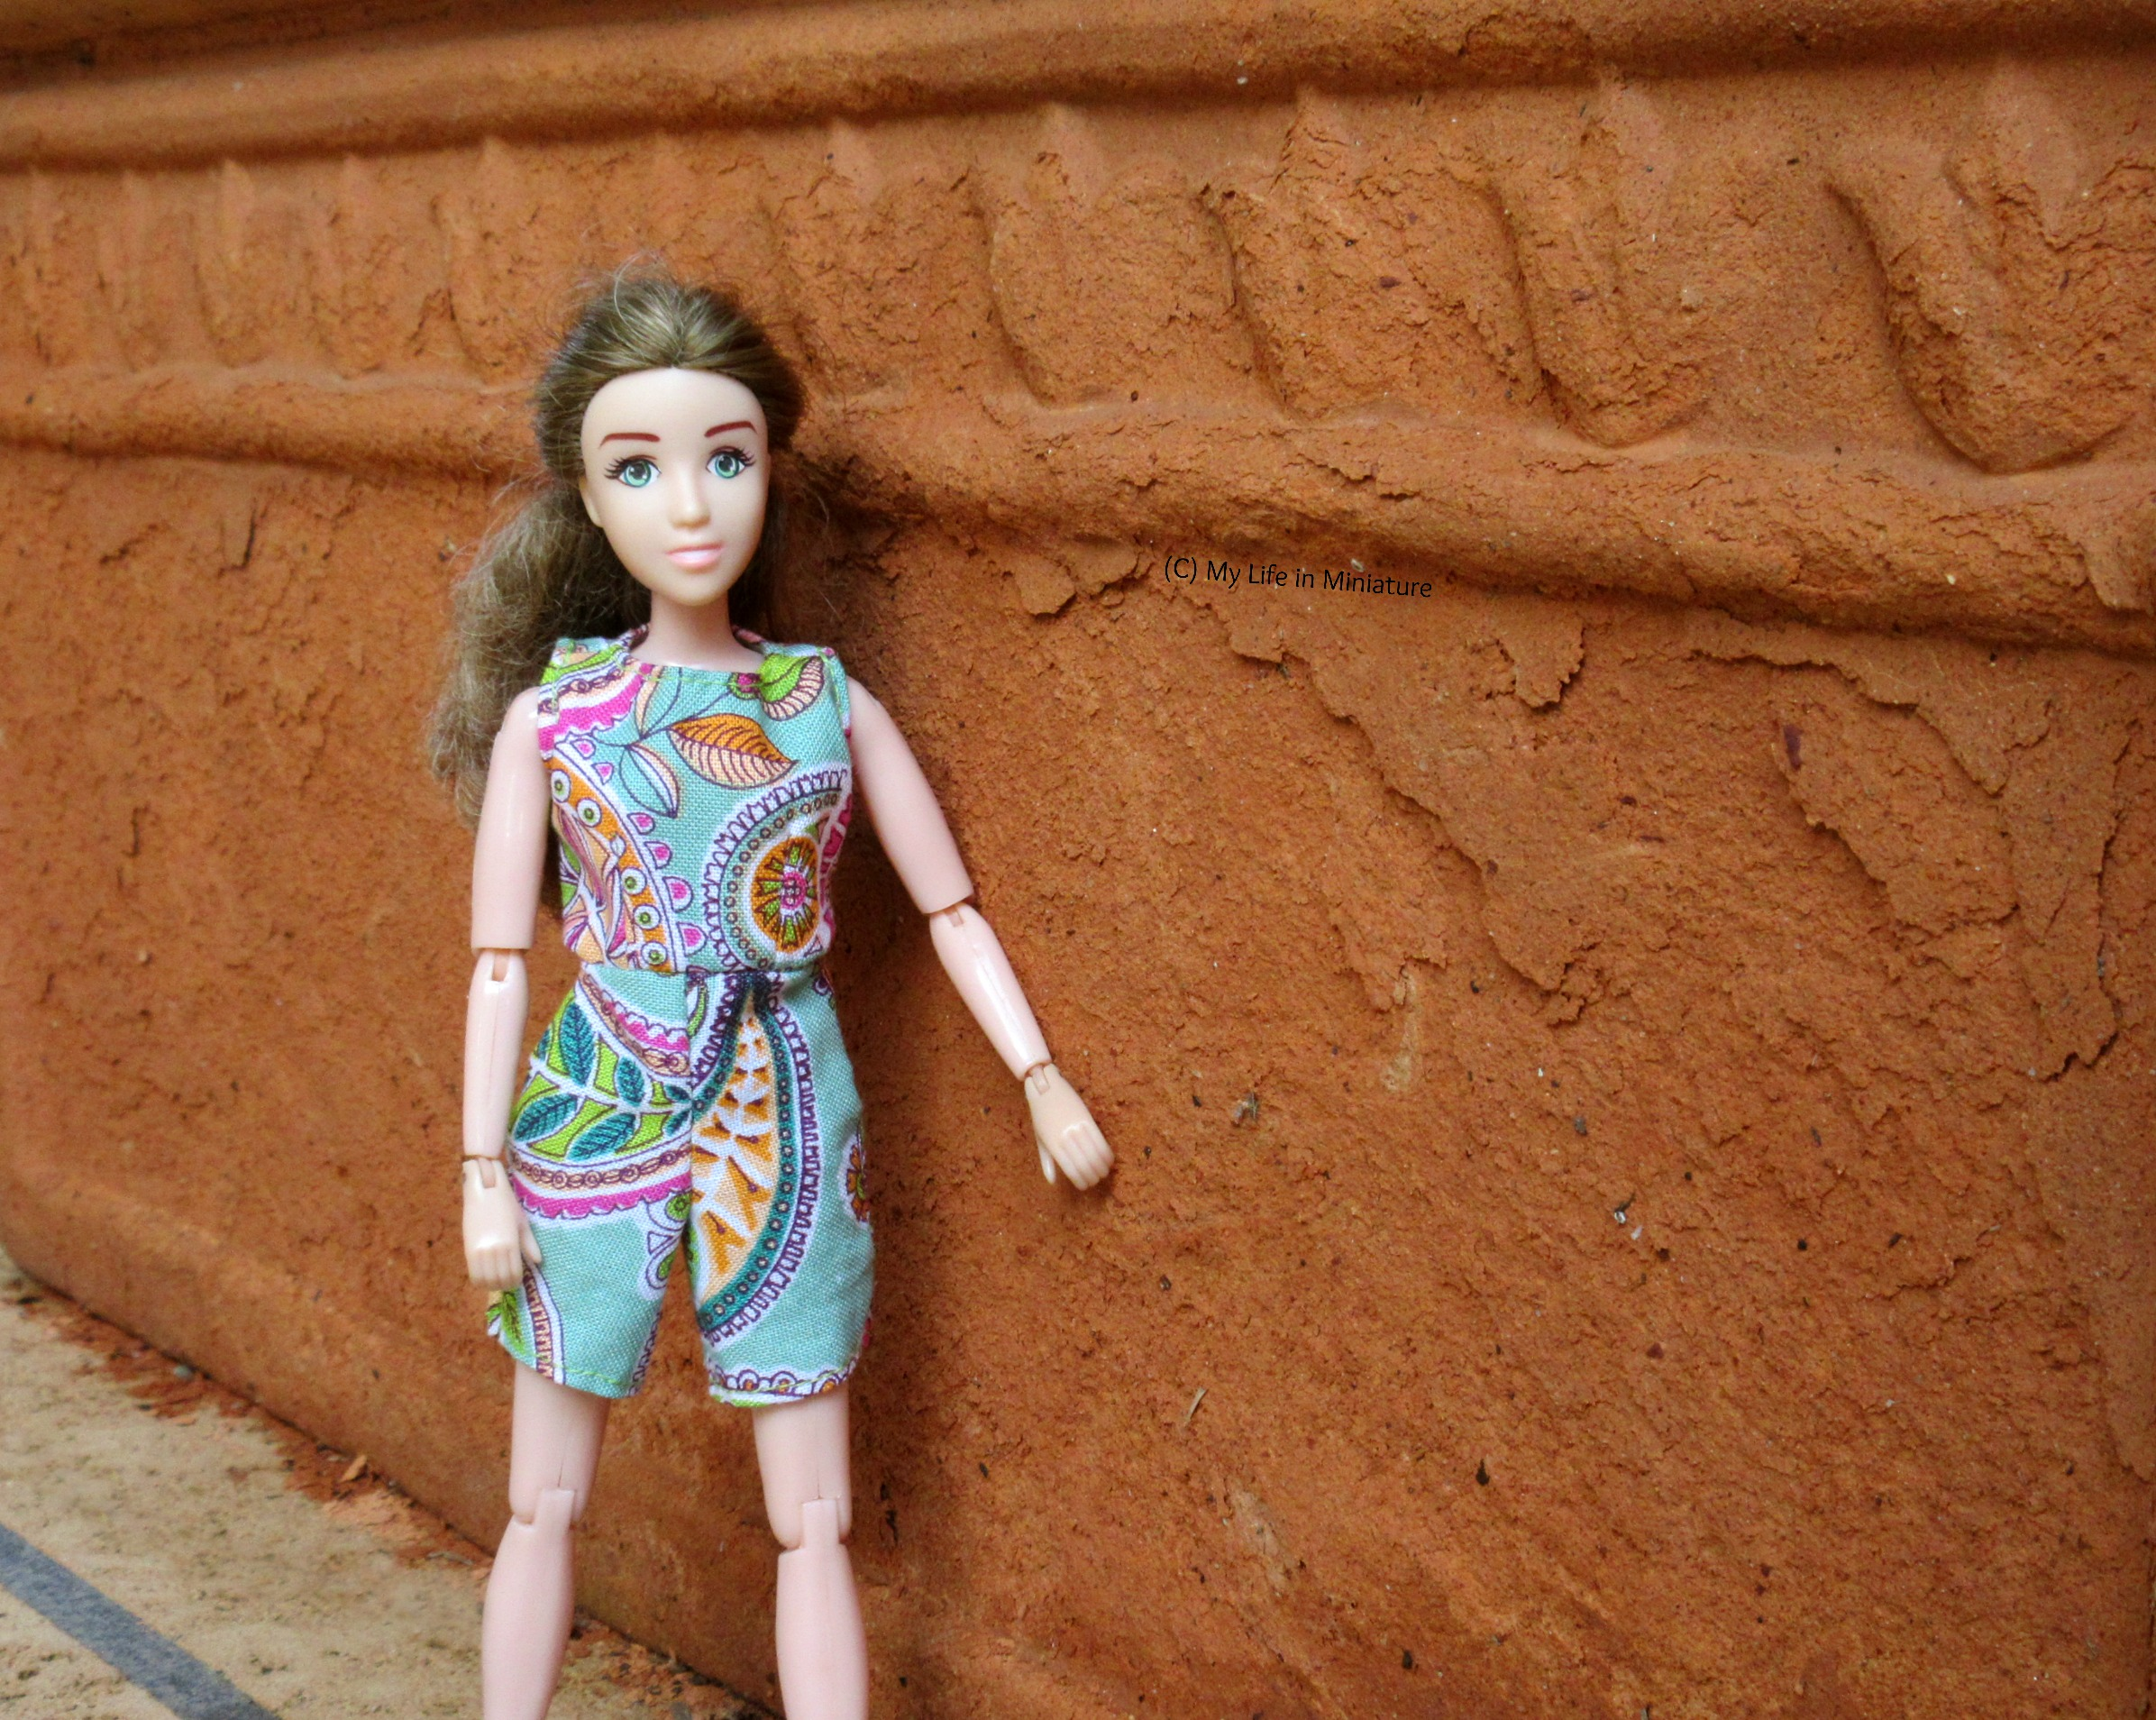 Sarah walks beside a terracotta pot, one hand trailing along the rough surface. She looks at the camera.